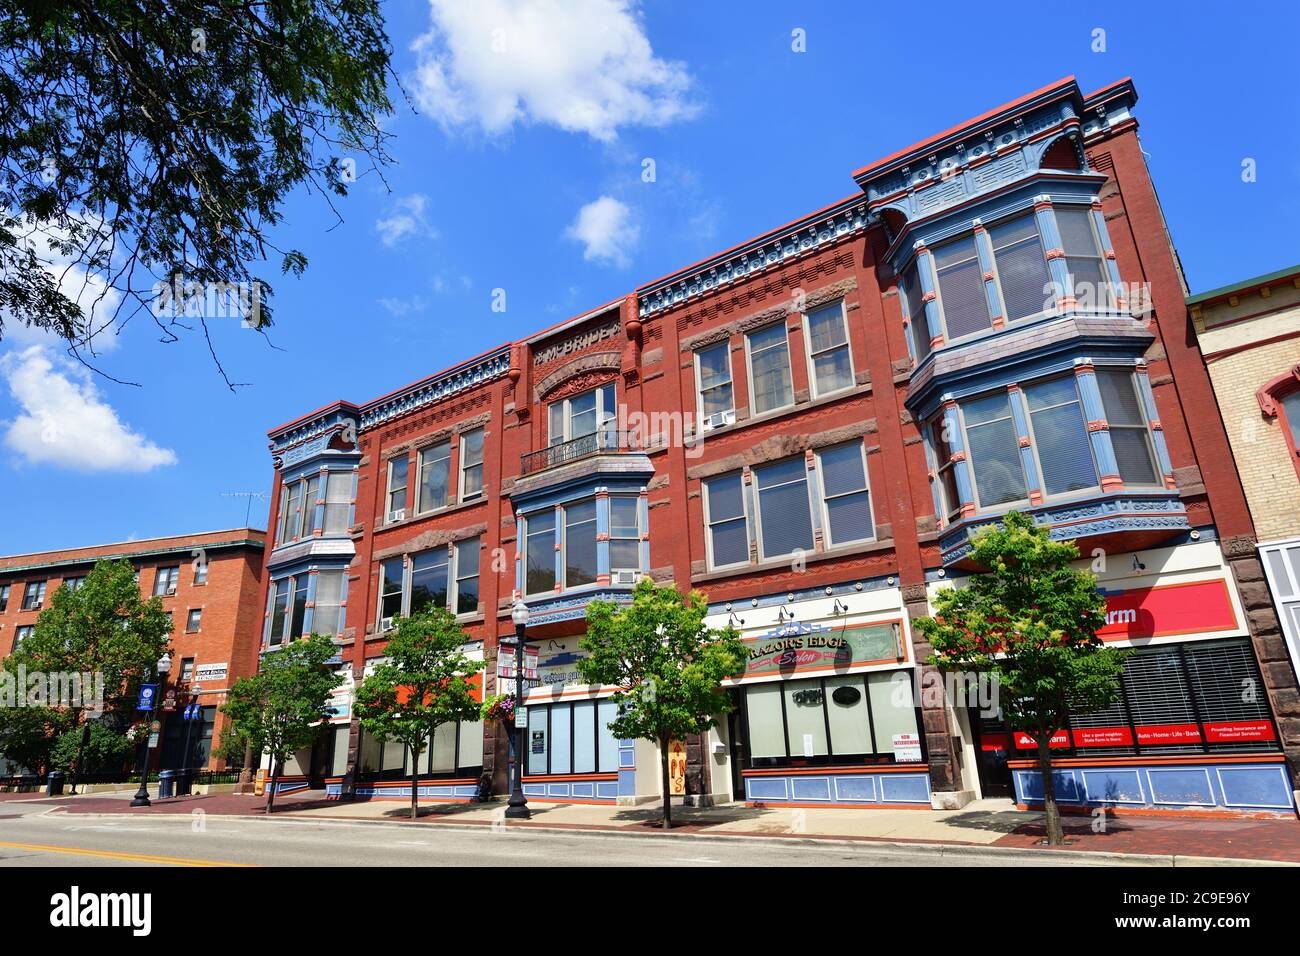 Elgin, Illinois, USA. Colorful facades on downtown building in the river city of Elgin, Illinois. Stock Photo